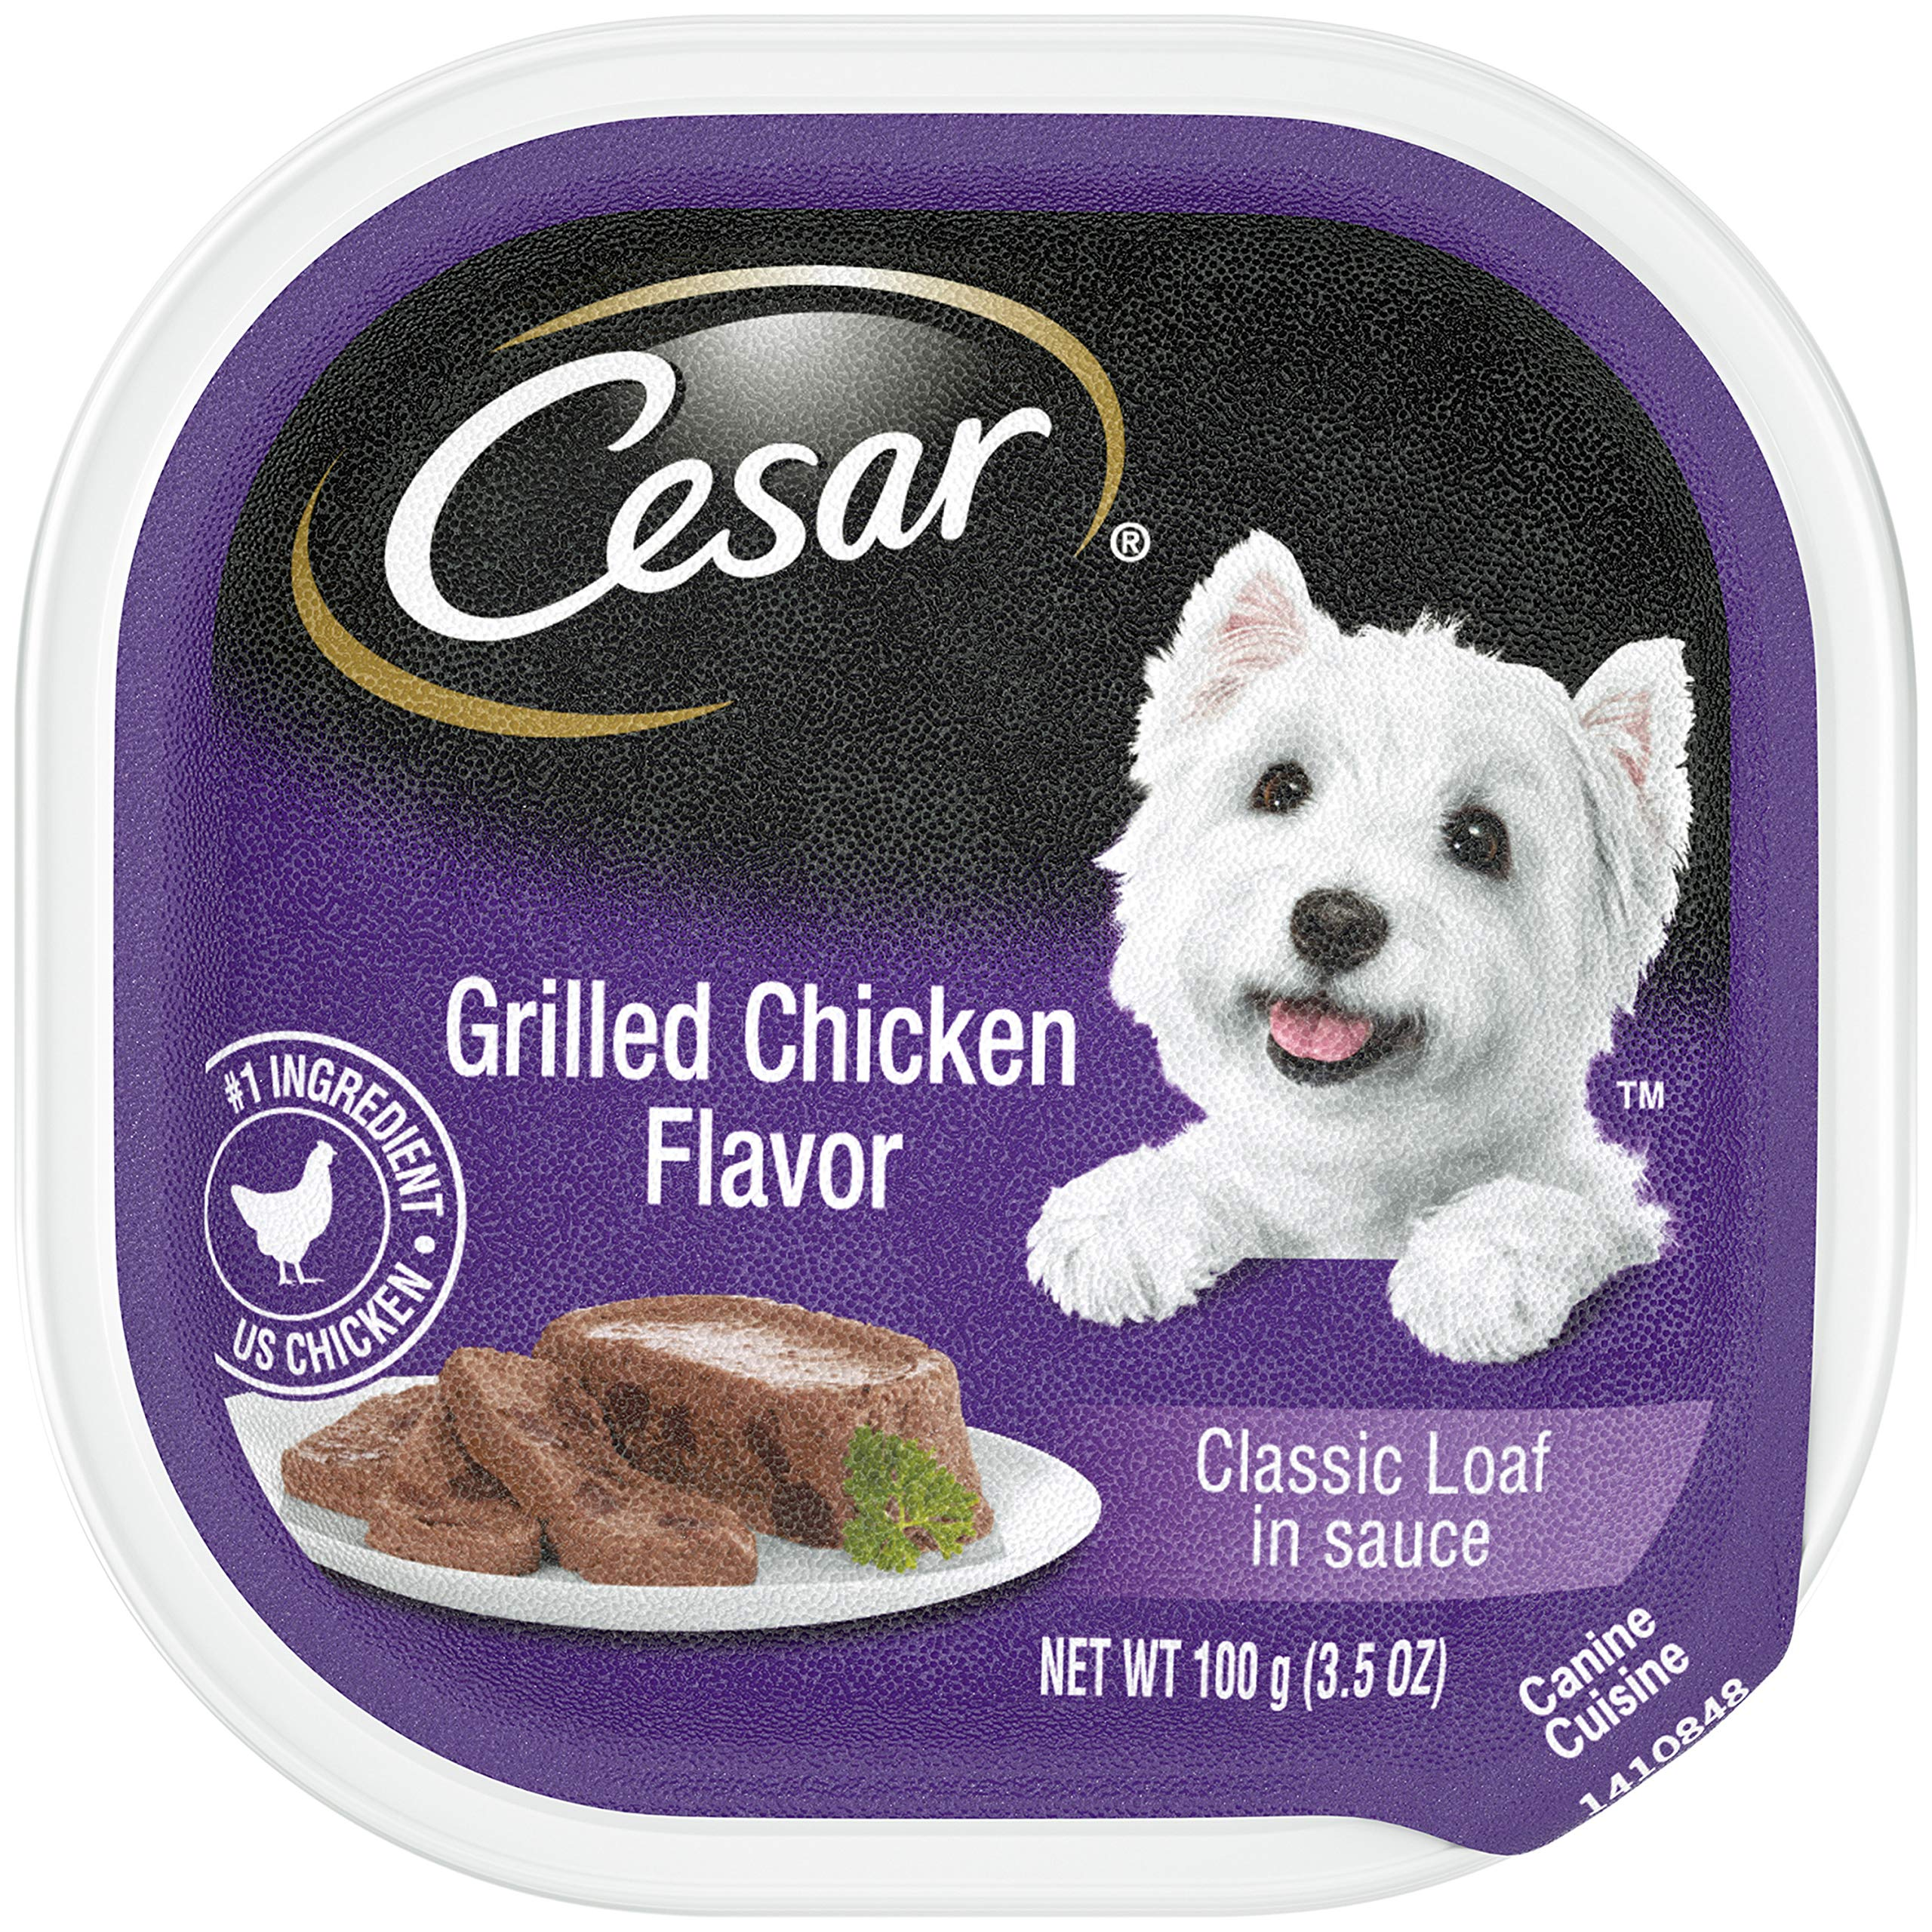 CESAR Soft Wet Dog Food Classic Loaf in Sauce Grilled Chicken Flavor, (24) 3.5 oz. Easy Peel Trays by Cesar